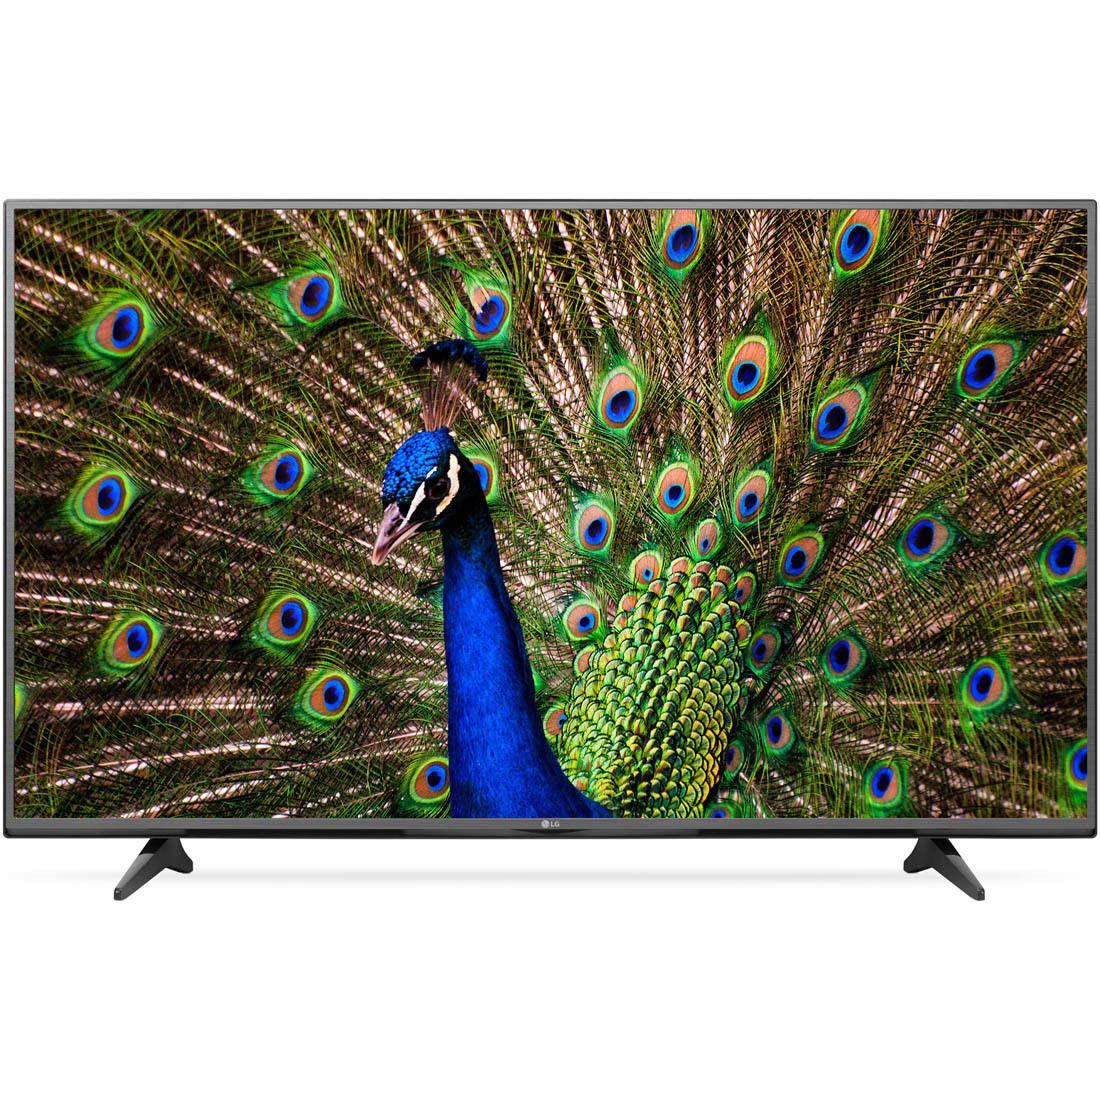 $599 with $200 Dell Gift Card LG 49UH6100 - 49-Inch 120Hz 4K Ultra HD Smart LED TV